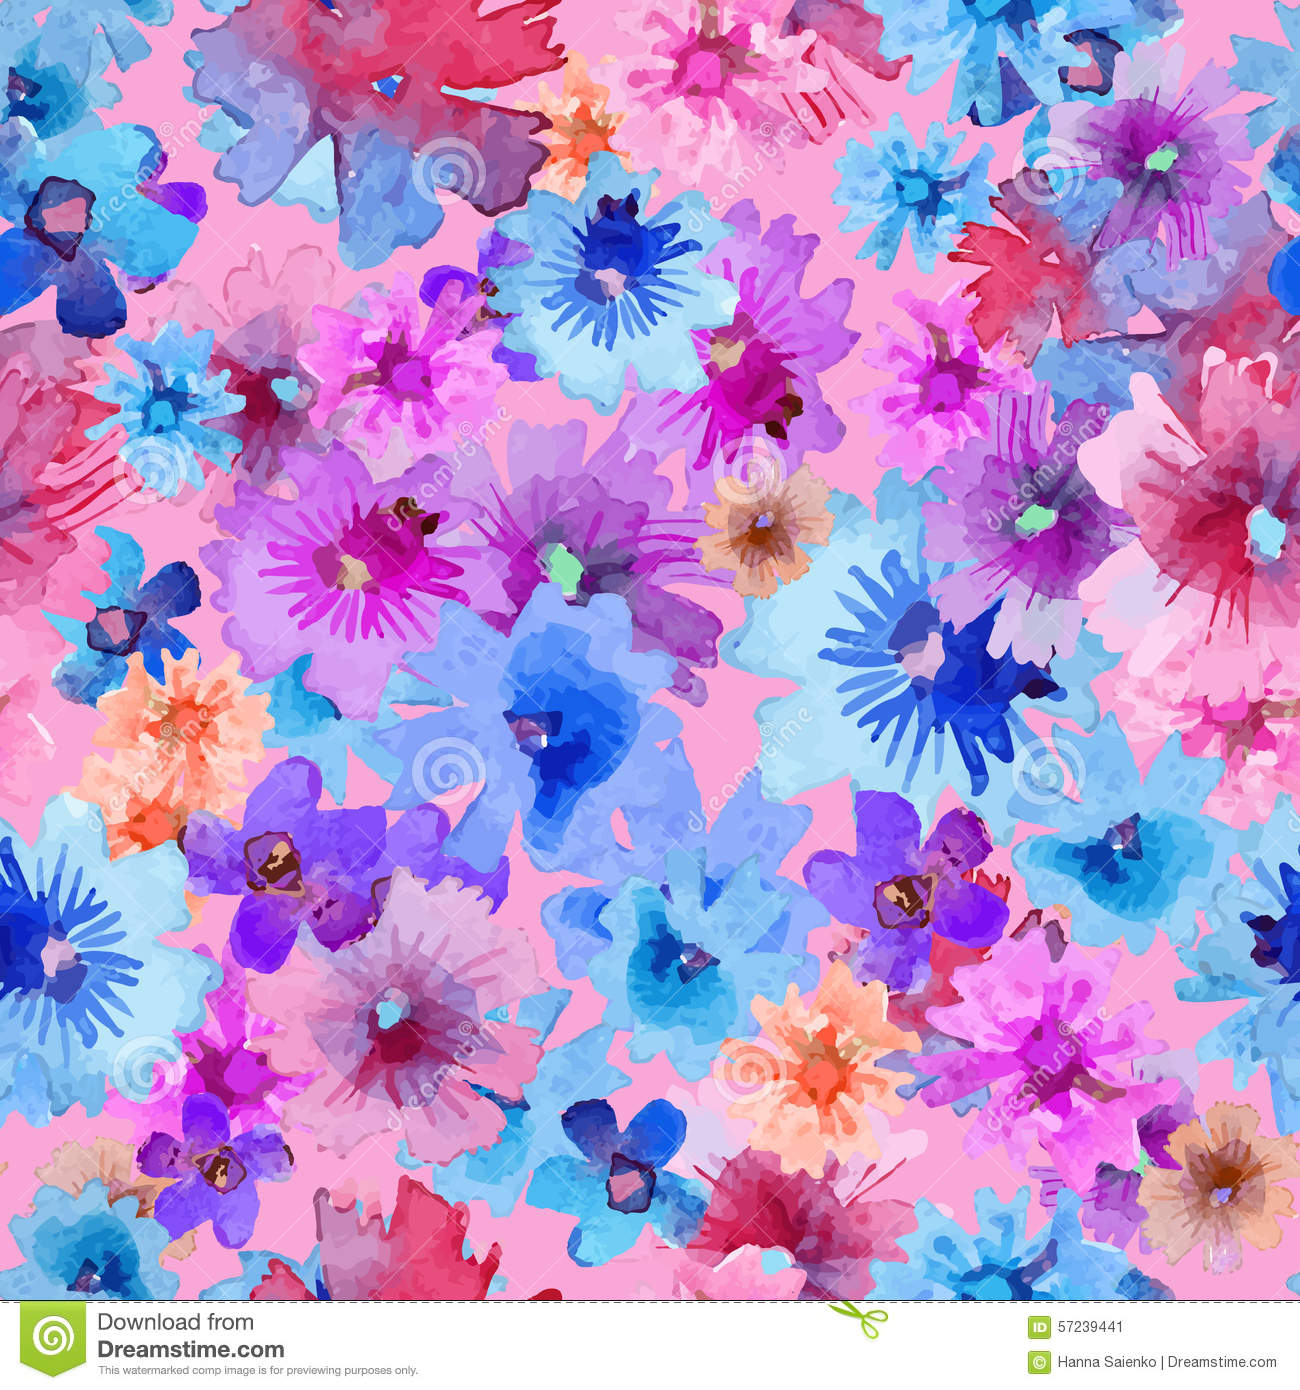 Share your Free abstract floral pattern